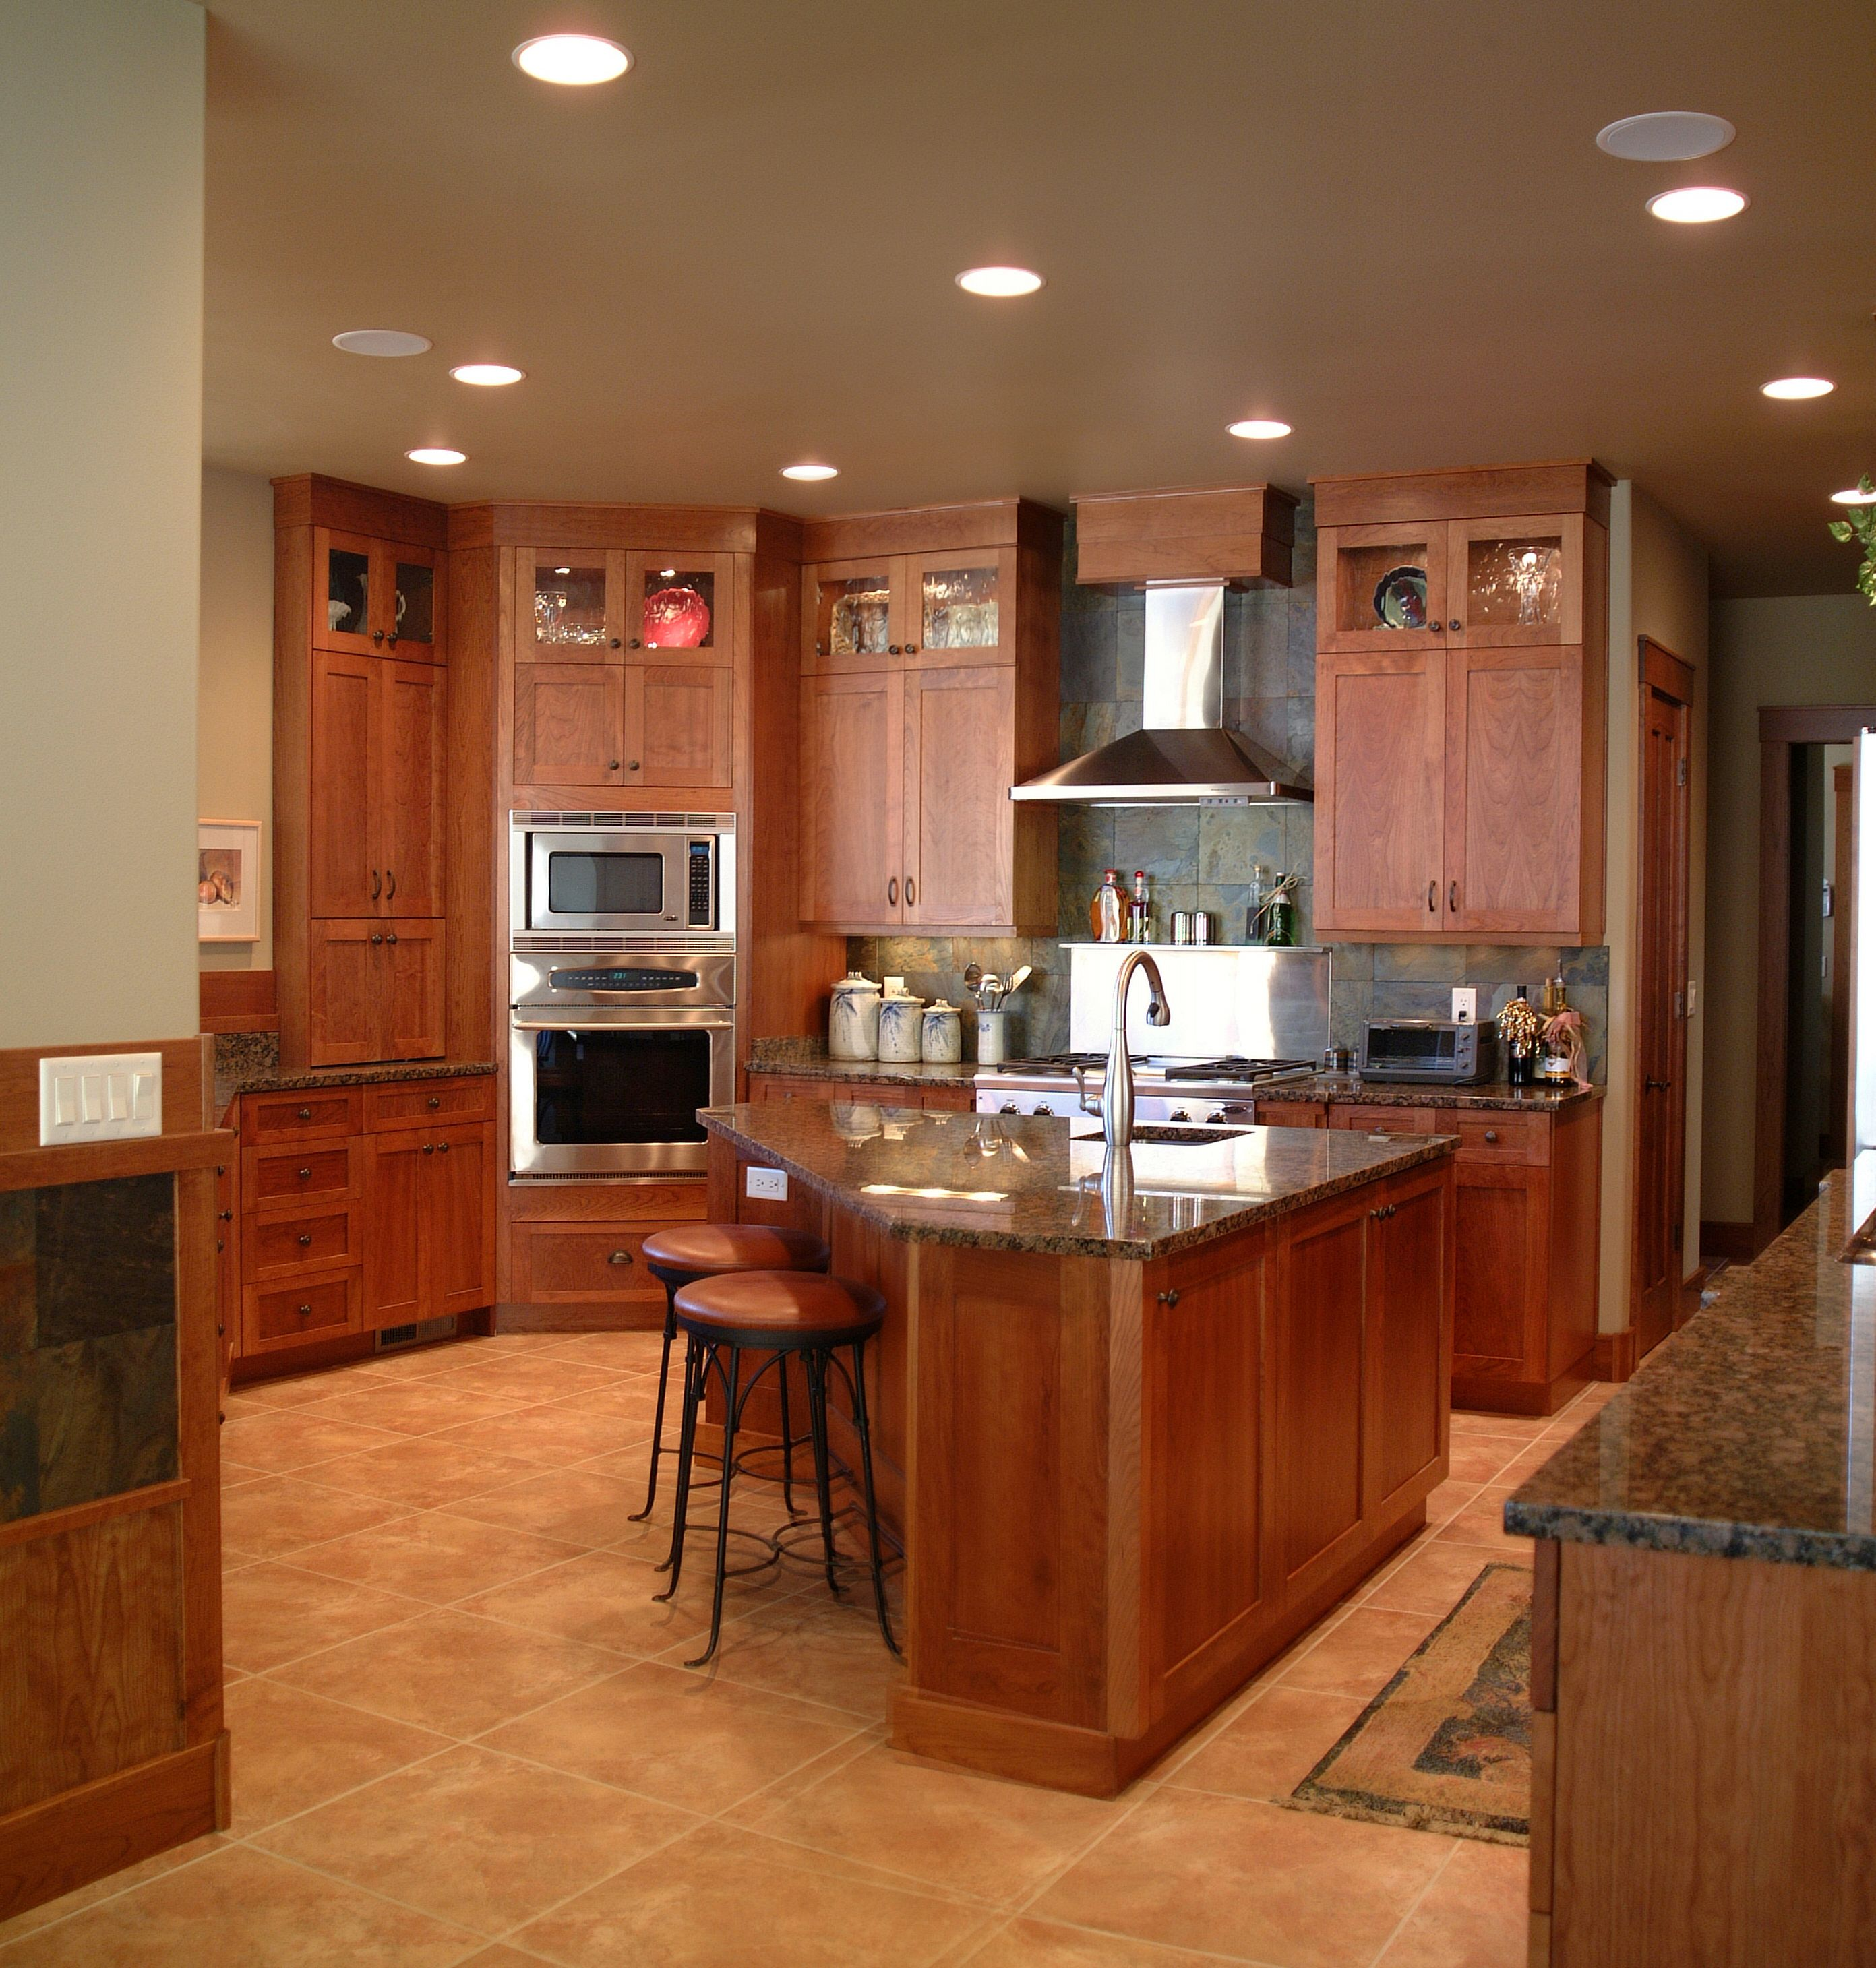 L Shaped Kitchen Island Kitchen Traditional With Apron: Warm, Inviting Kitchen With High Display Cabinets